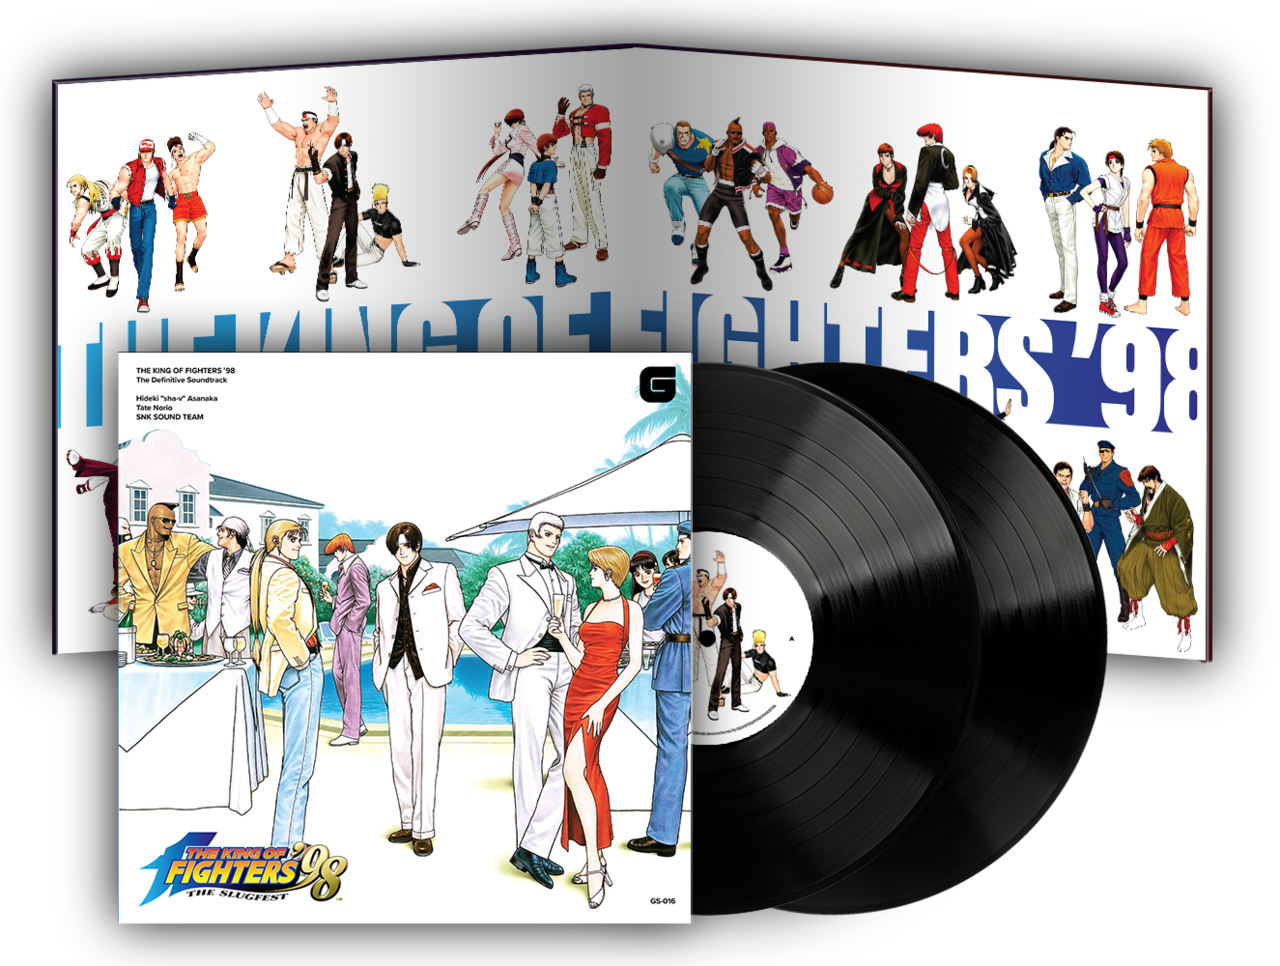 King of Fighters '98 - The Definitive Soundtrack